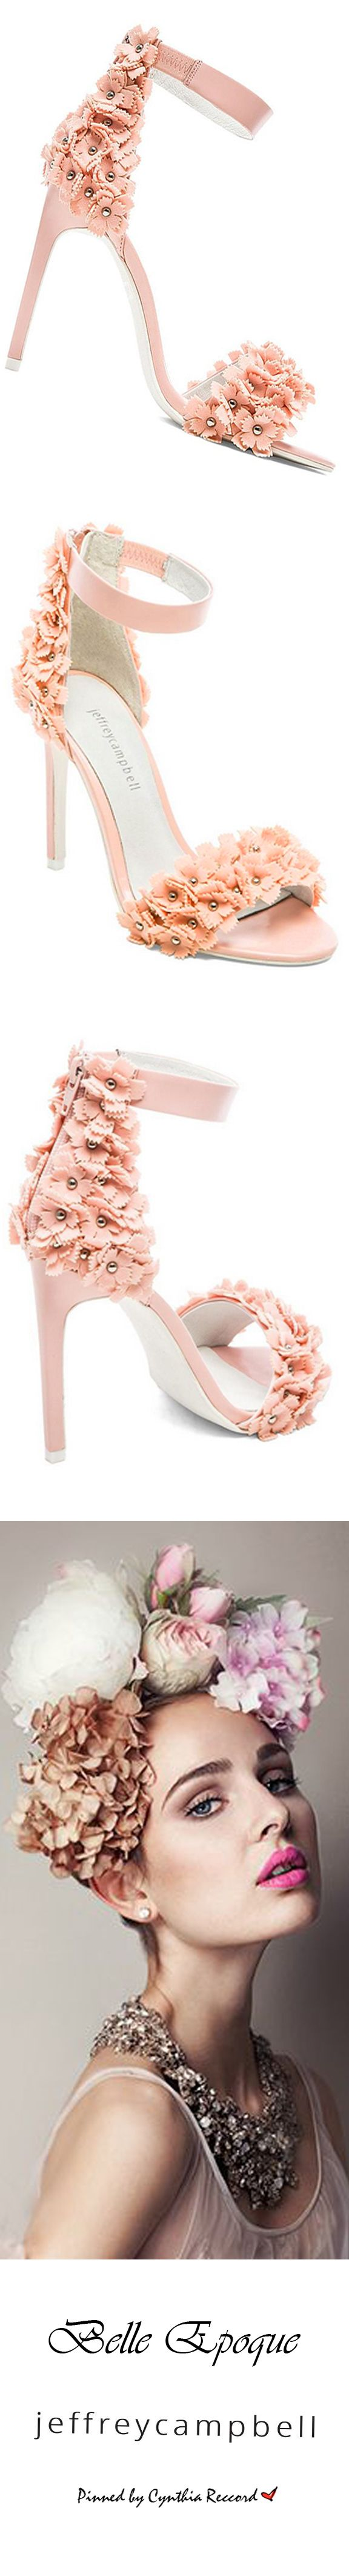 Trend Belle Epoque | Jeffrey Campbell | cynthia reccord